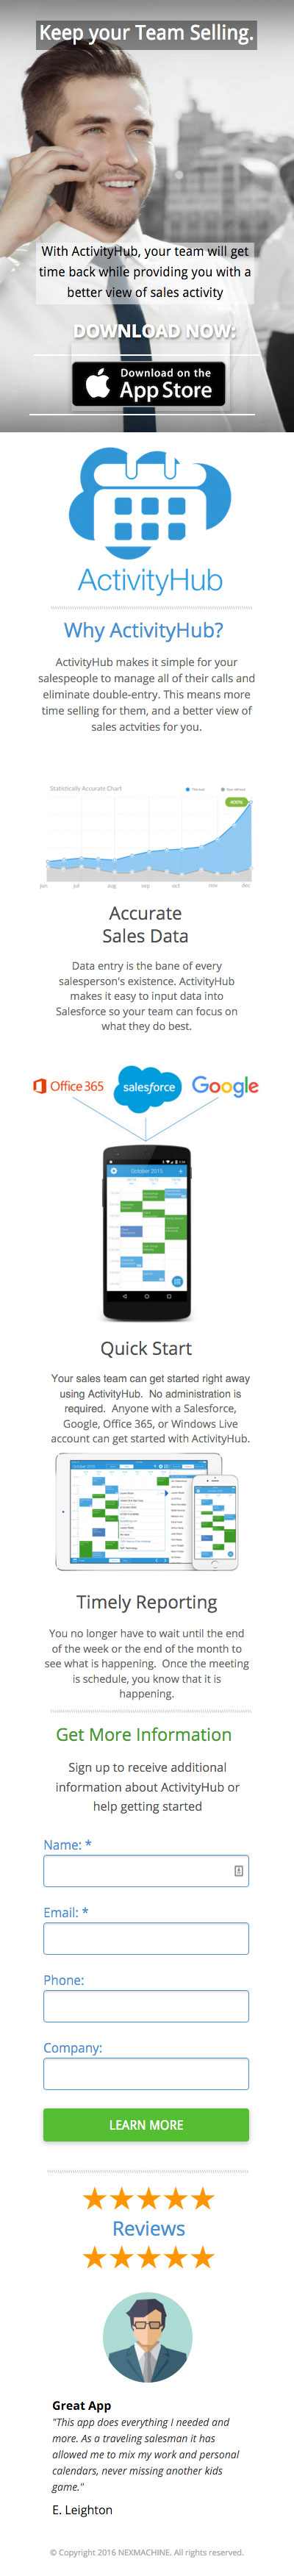 ActivityHub Sales Manager landing page mobile screenshot